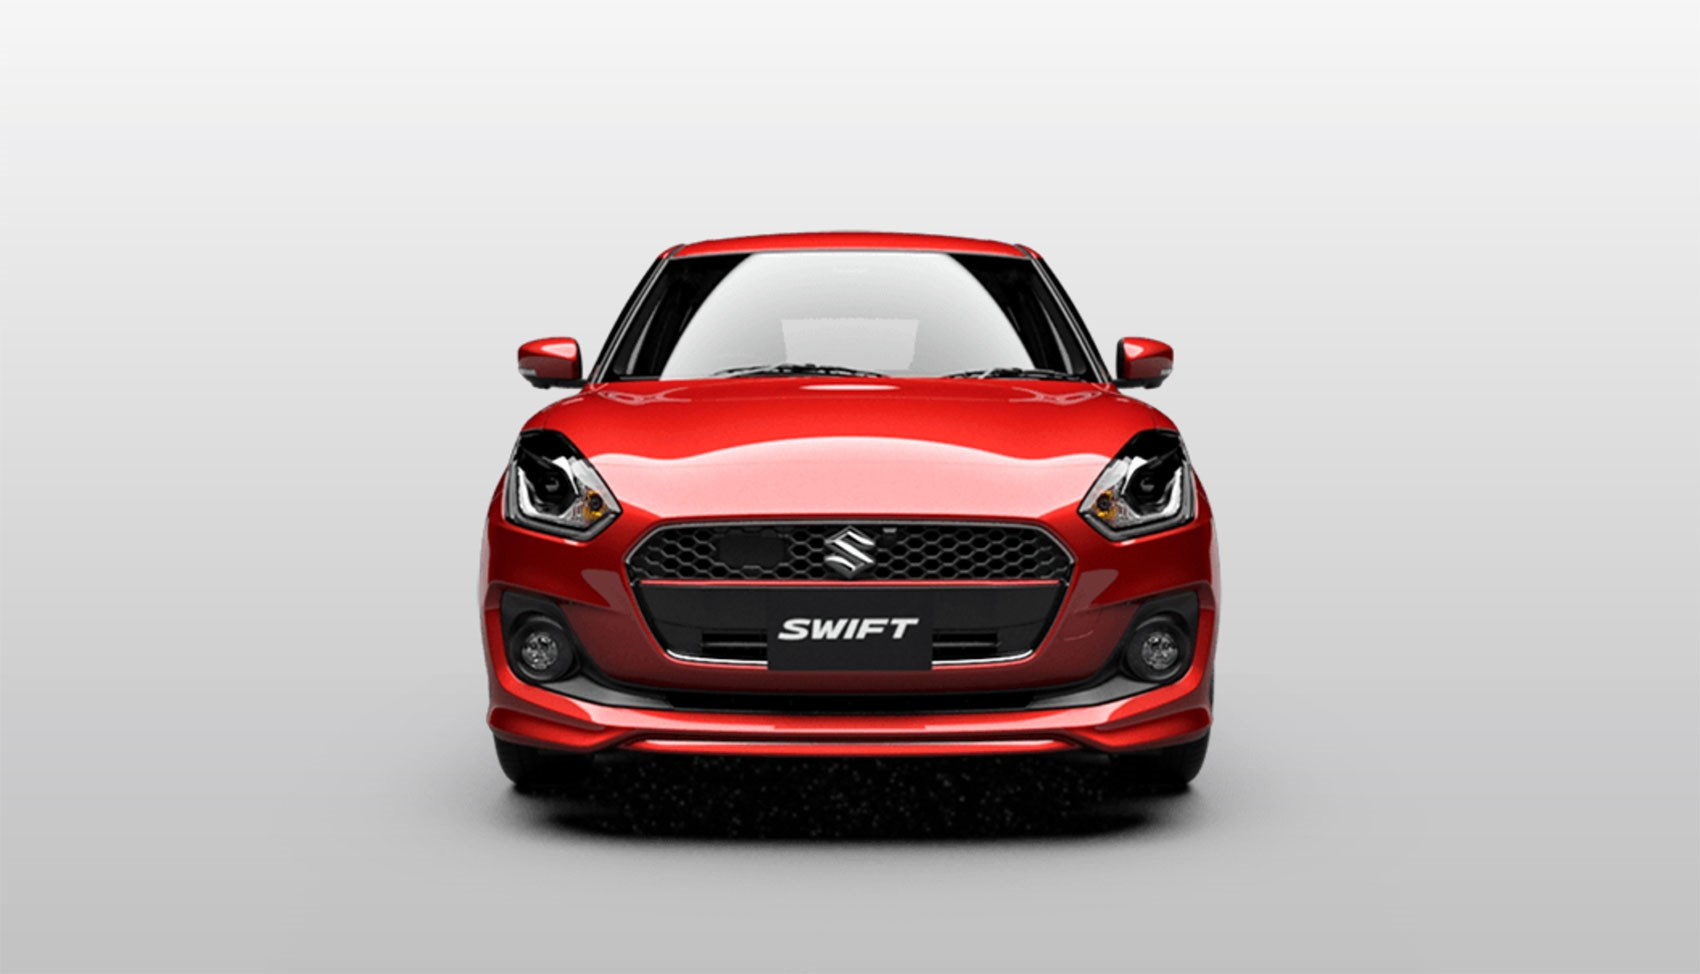 New 2017 Suzuki Swift Unveiled In An